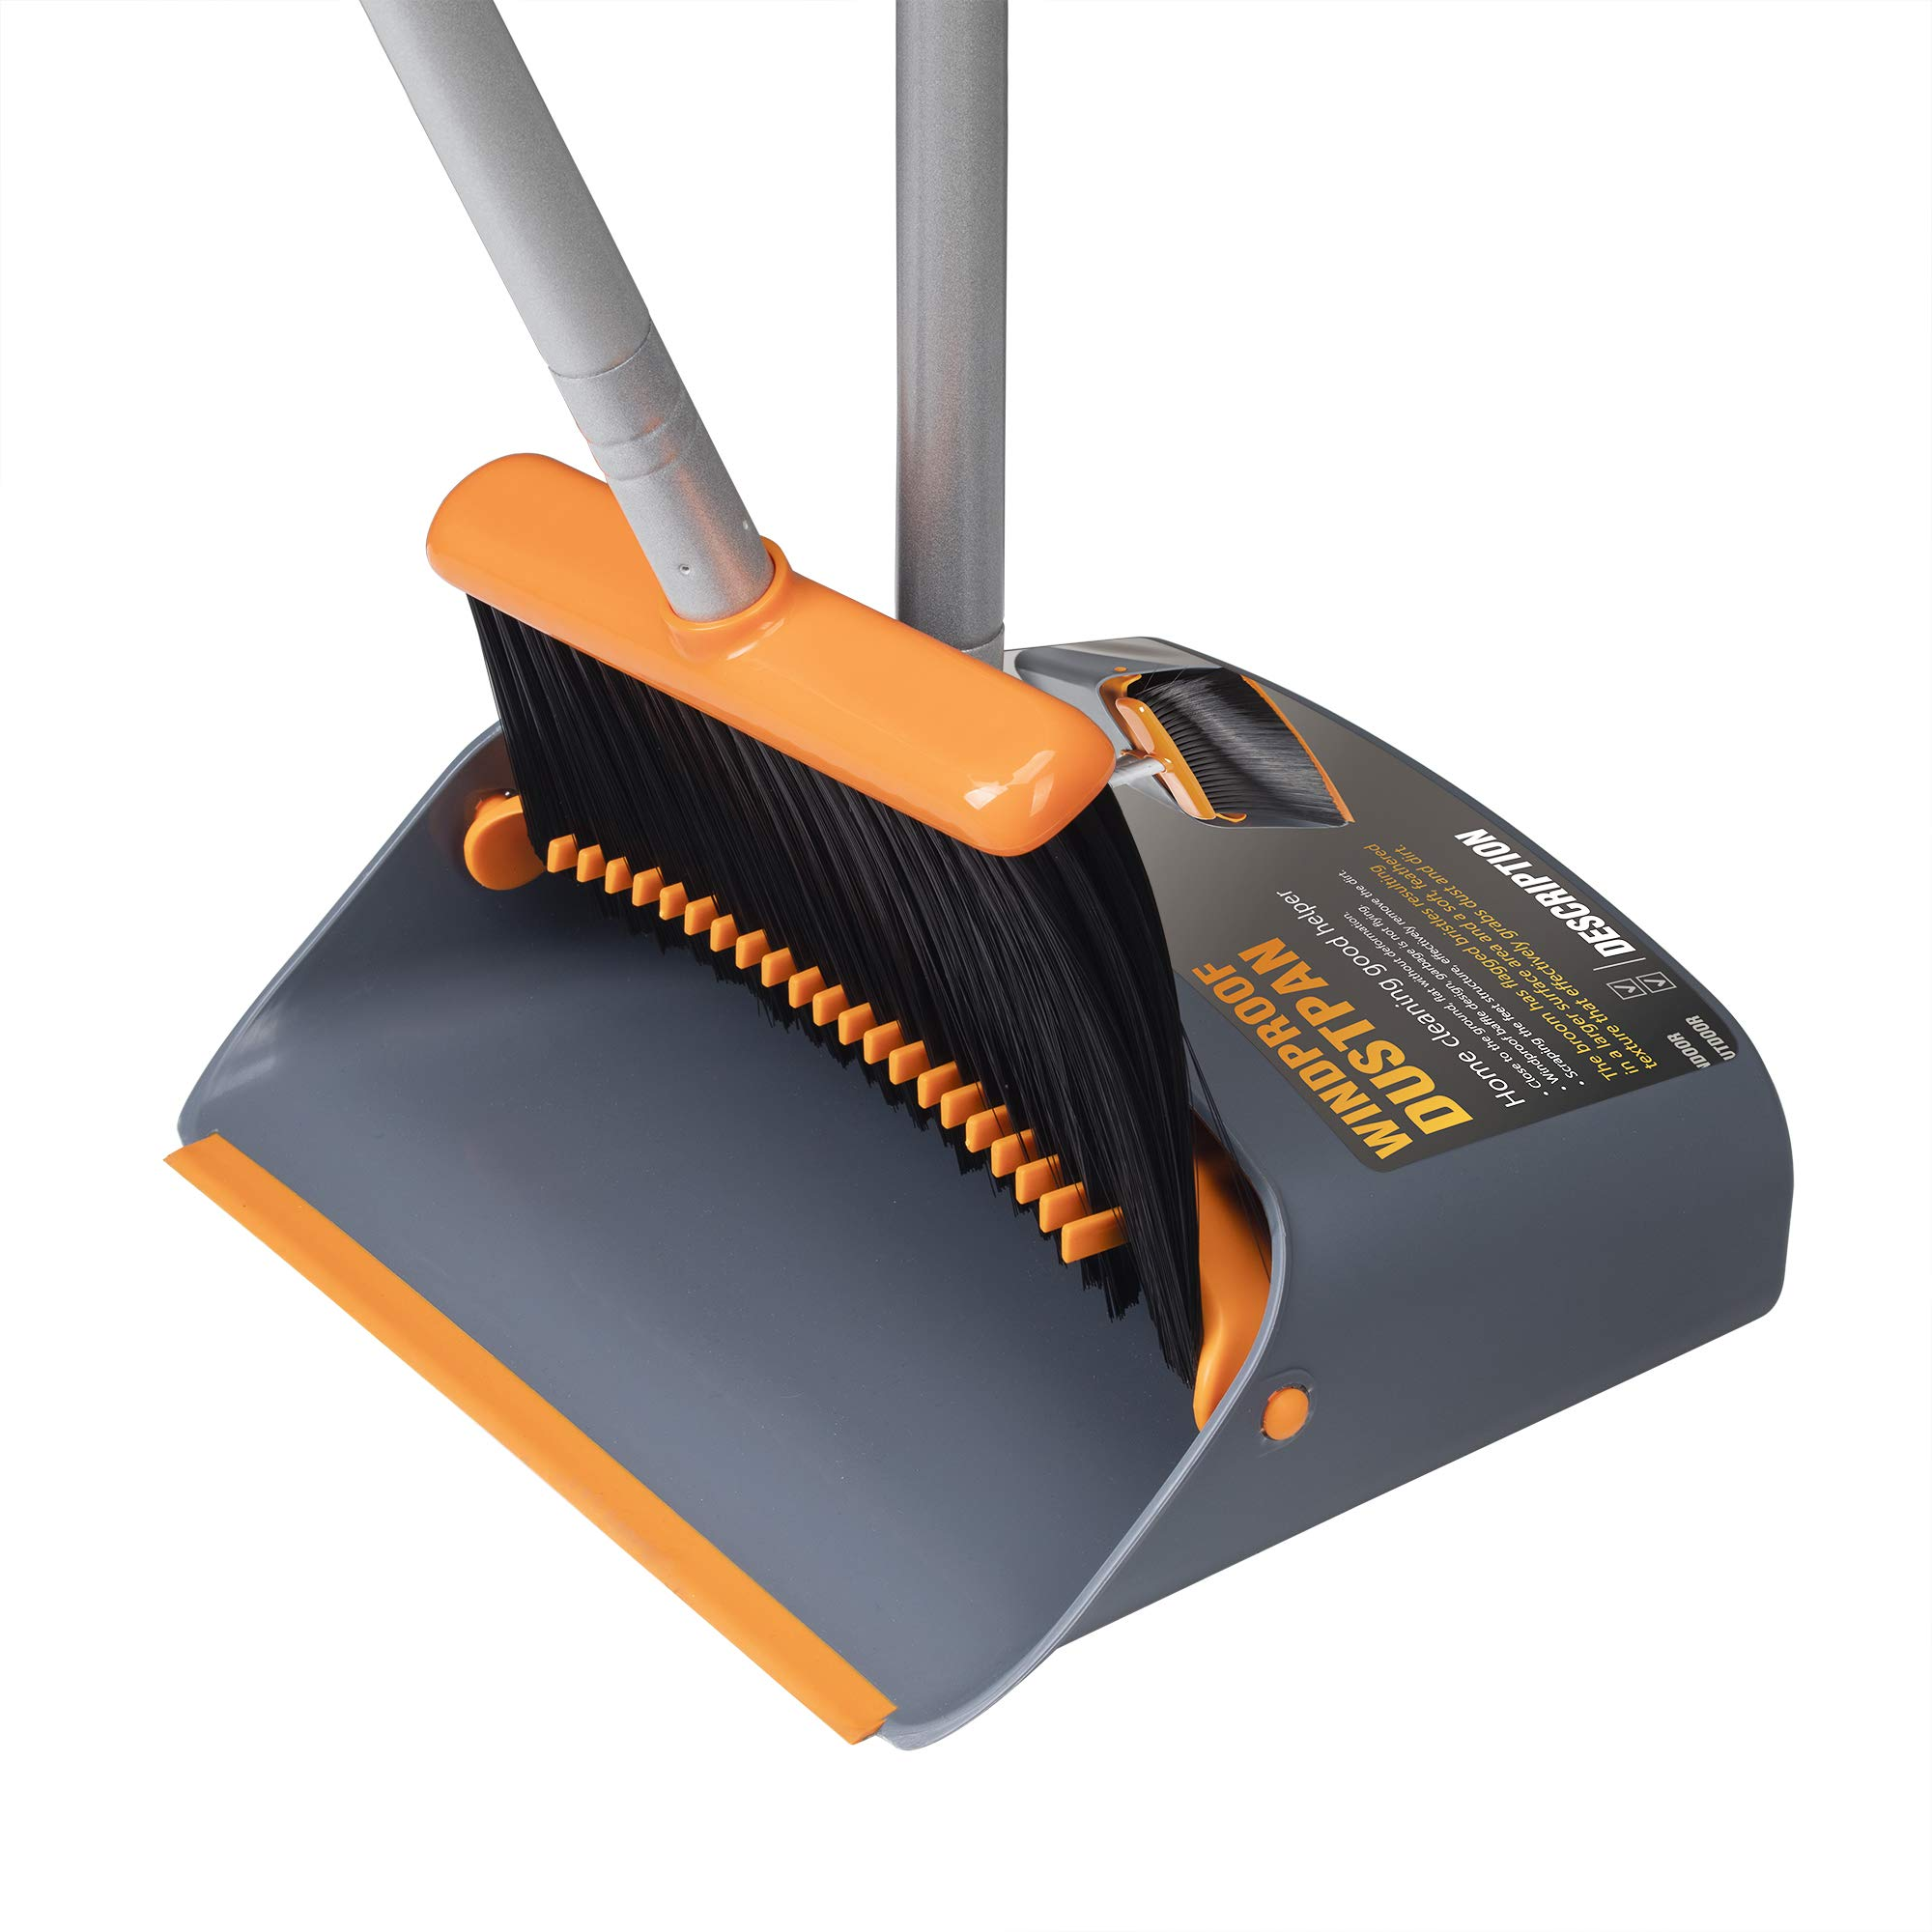 TooToo Broom and Dustpan Set, Sweep Set, Upright Broom and Dustpan Combo with 40''/54'' Long Extendable Handle for Household Cleaning Sweeping, Orange and Dark Grey